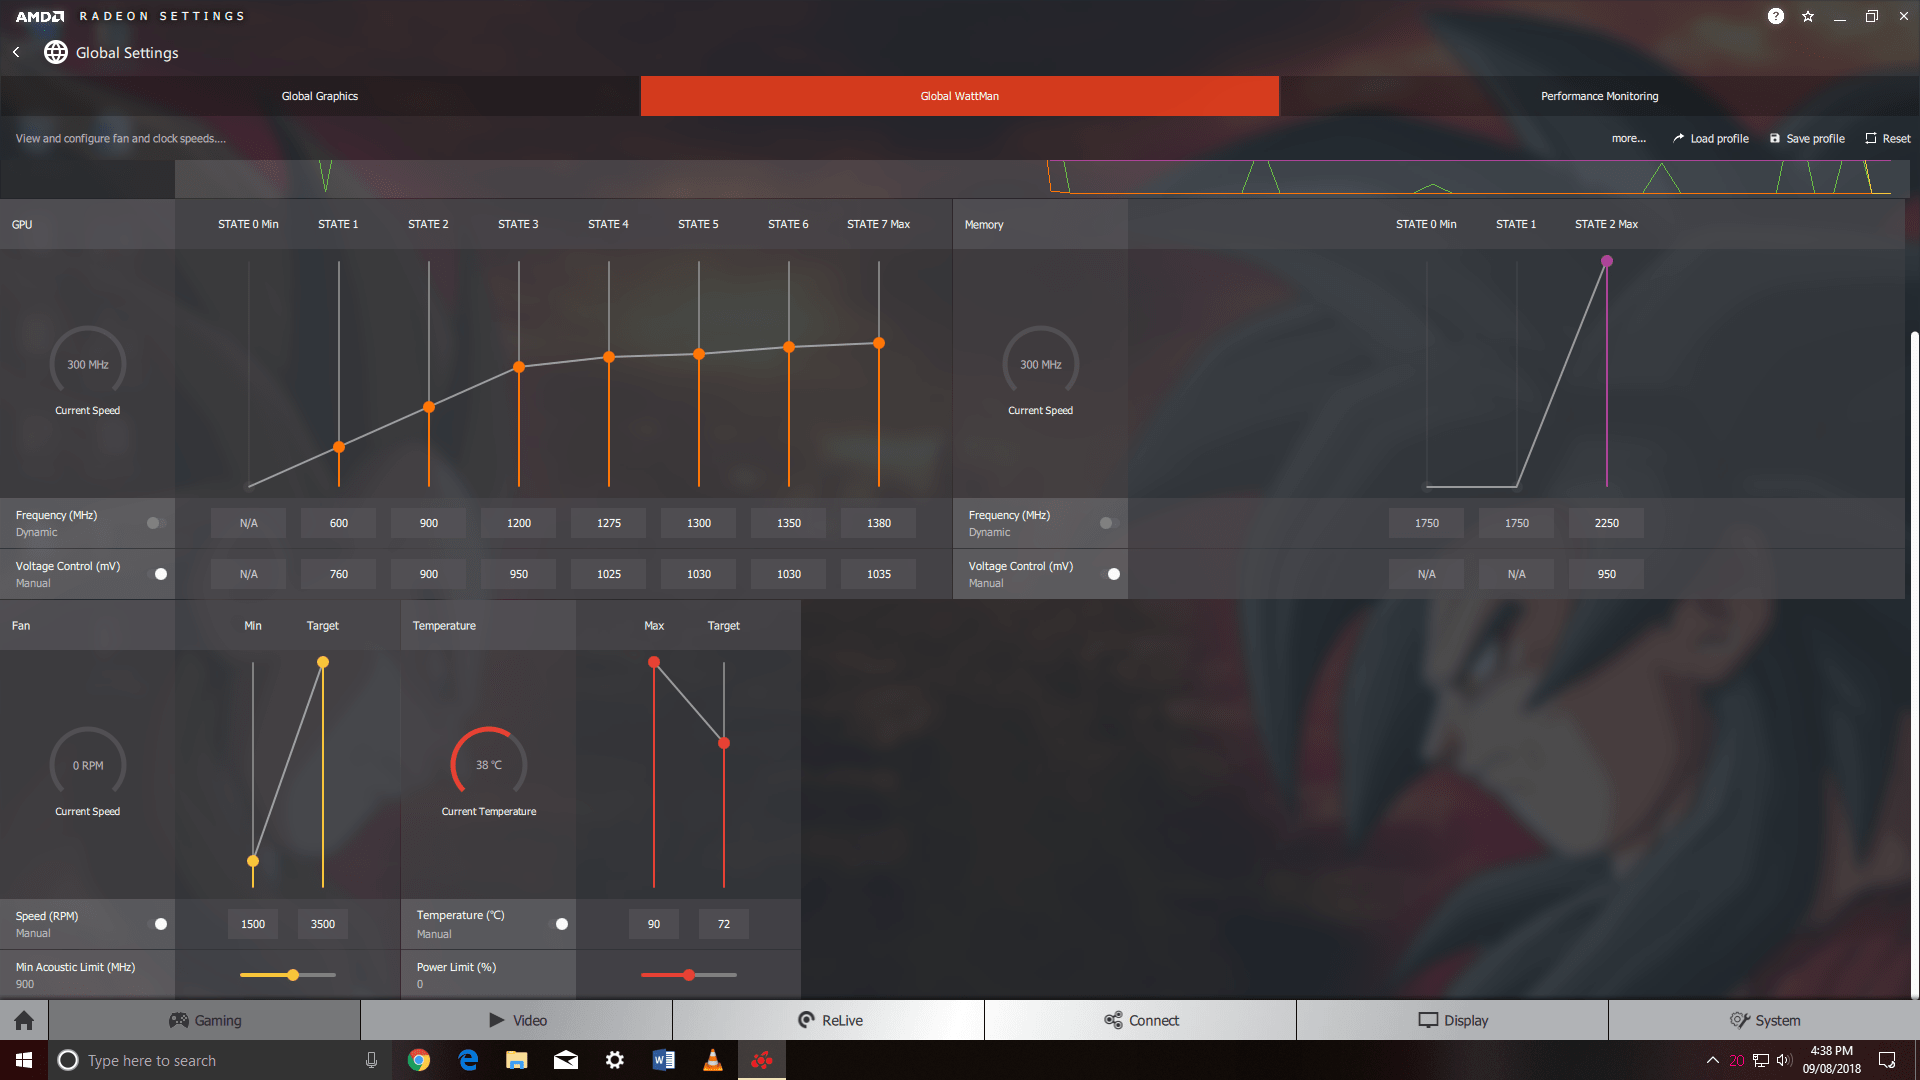 xfx rx 580 undervolting